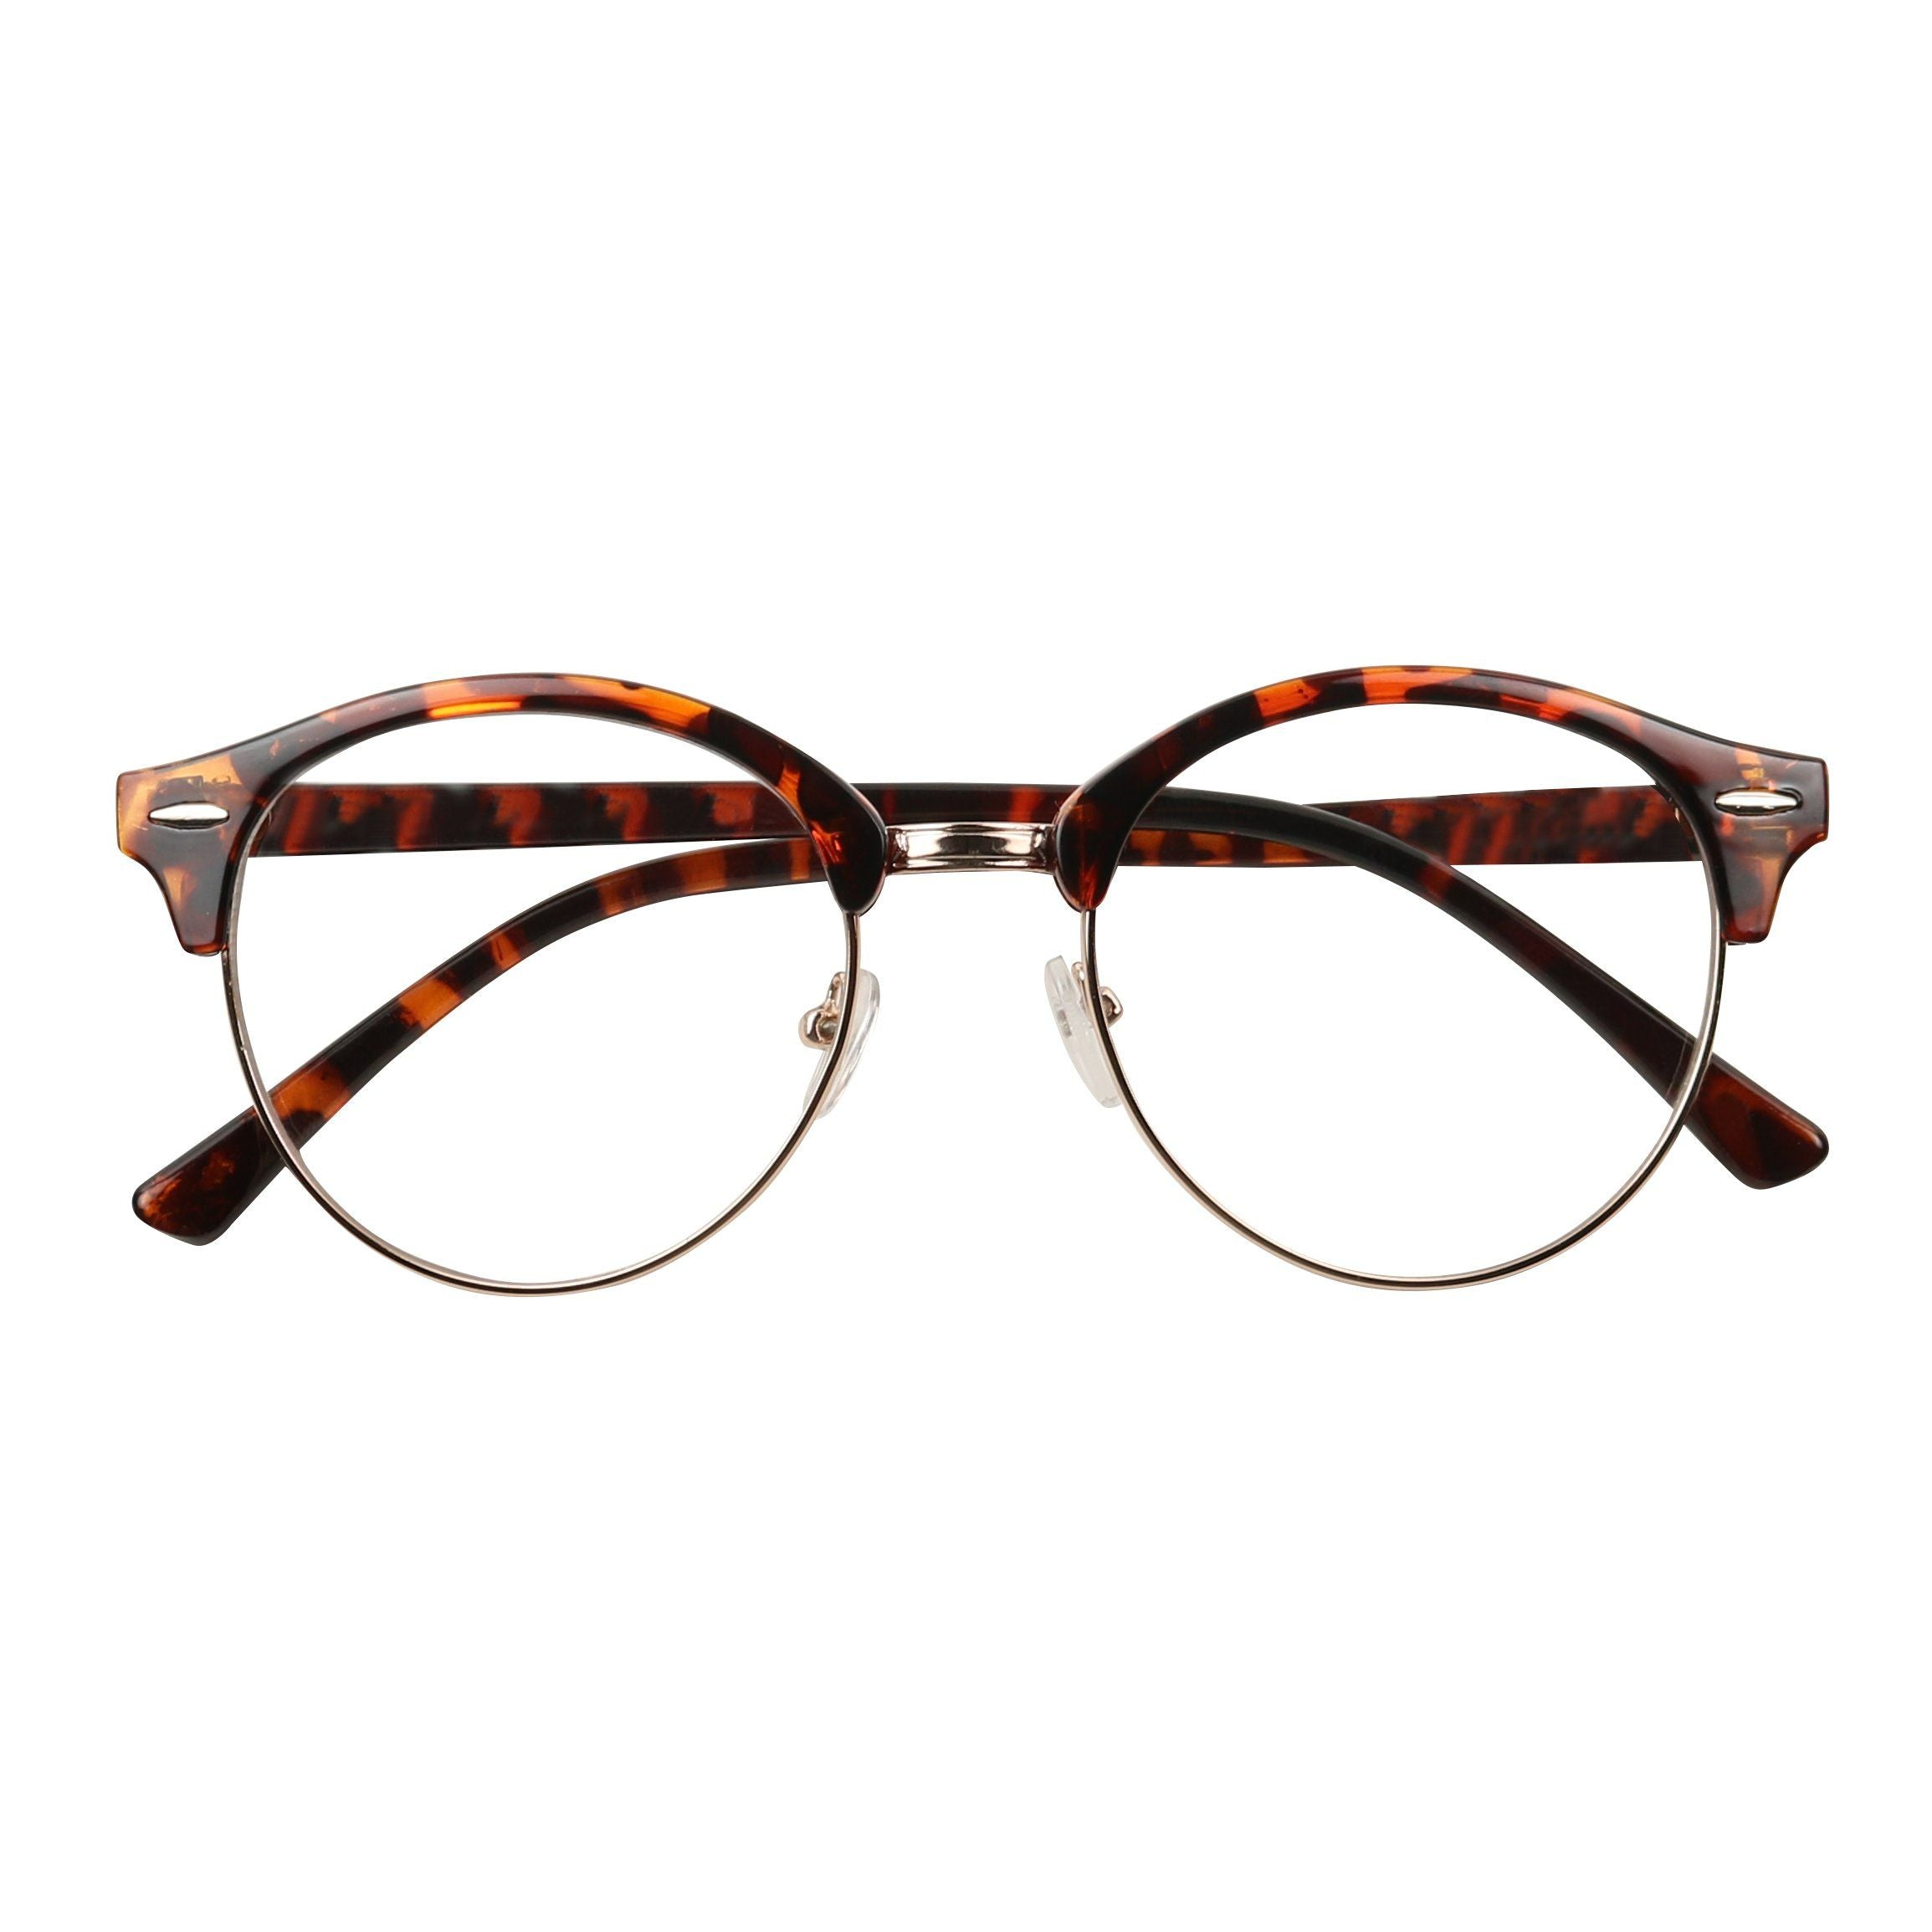 c6fc6a1fc7d0f HOLLY Round Retro 1980 s Hipster Circle Vintage Clear Lens Glasses -  ShadyVEU ...